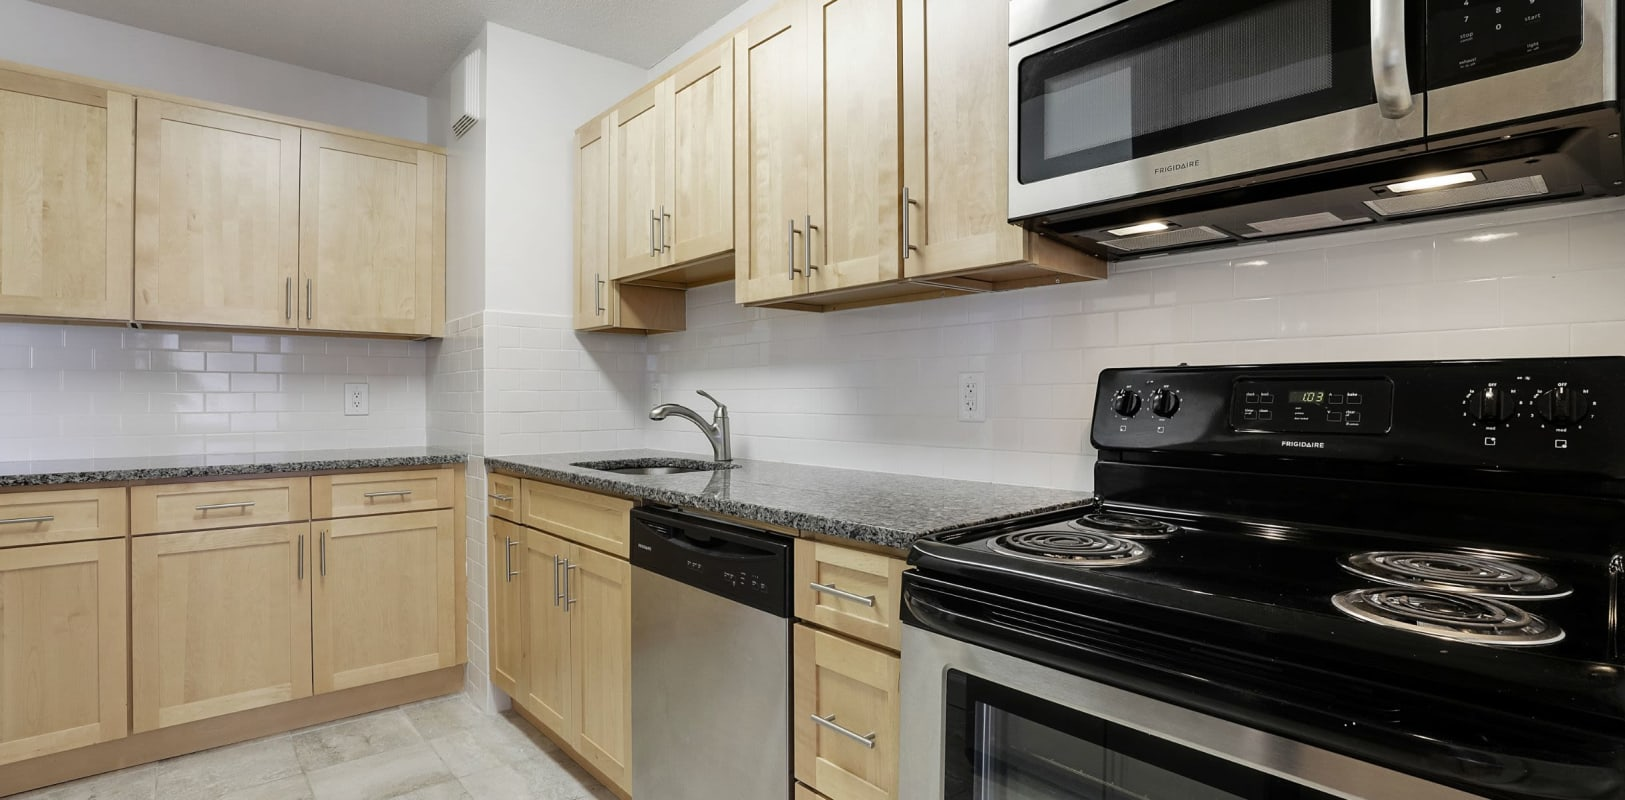 Kitchen with stainless steel appliances at 140 Prospect in Hackensack, New Jersey